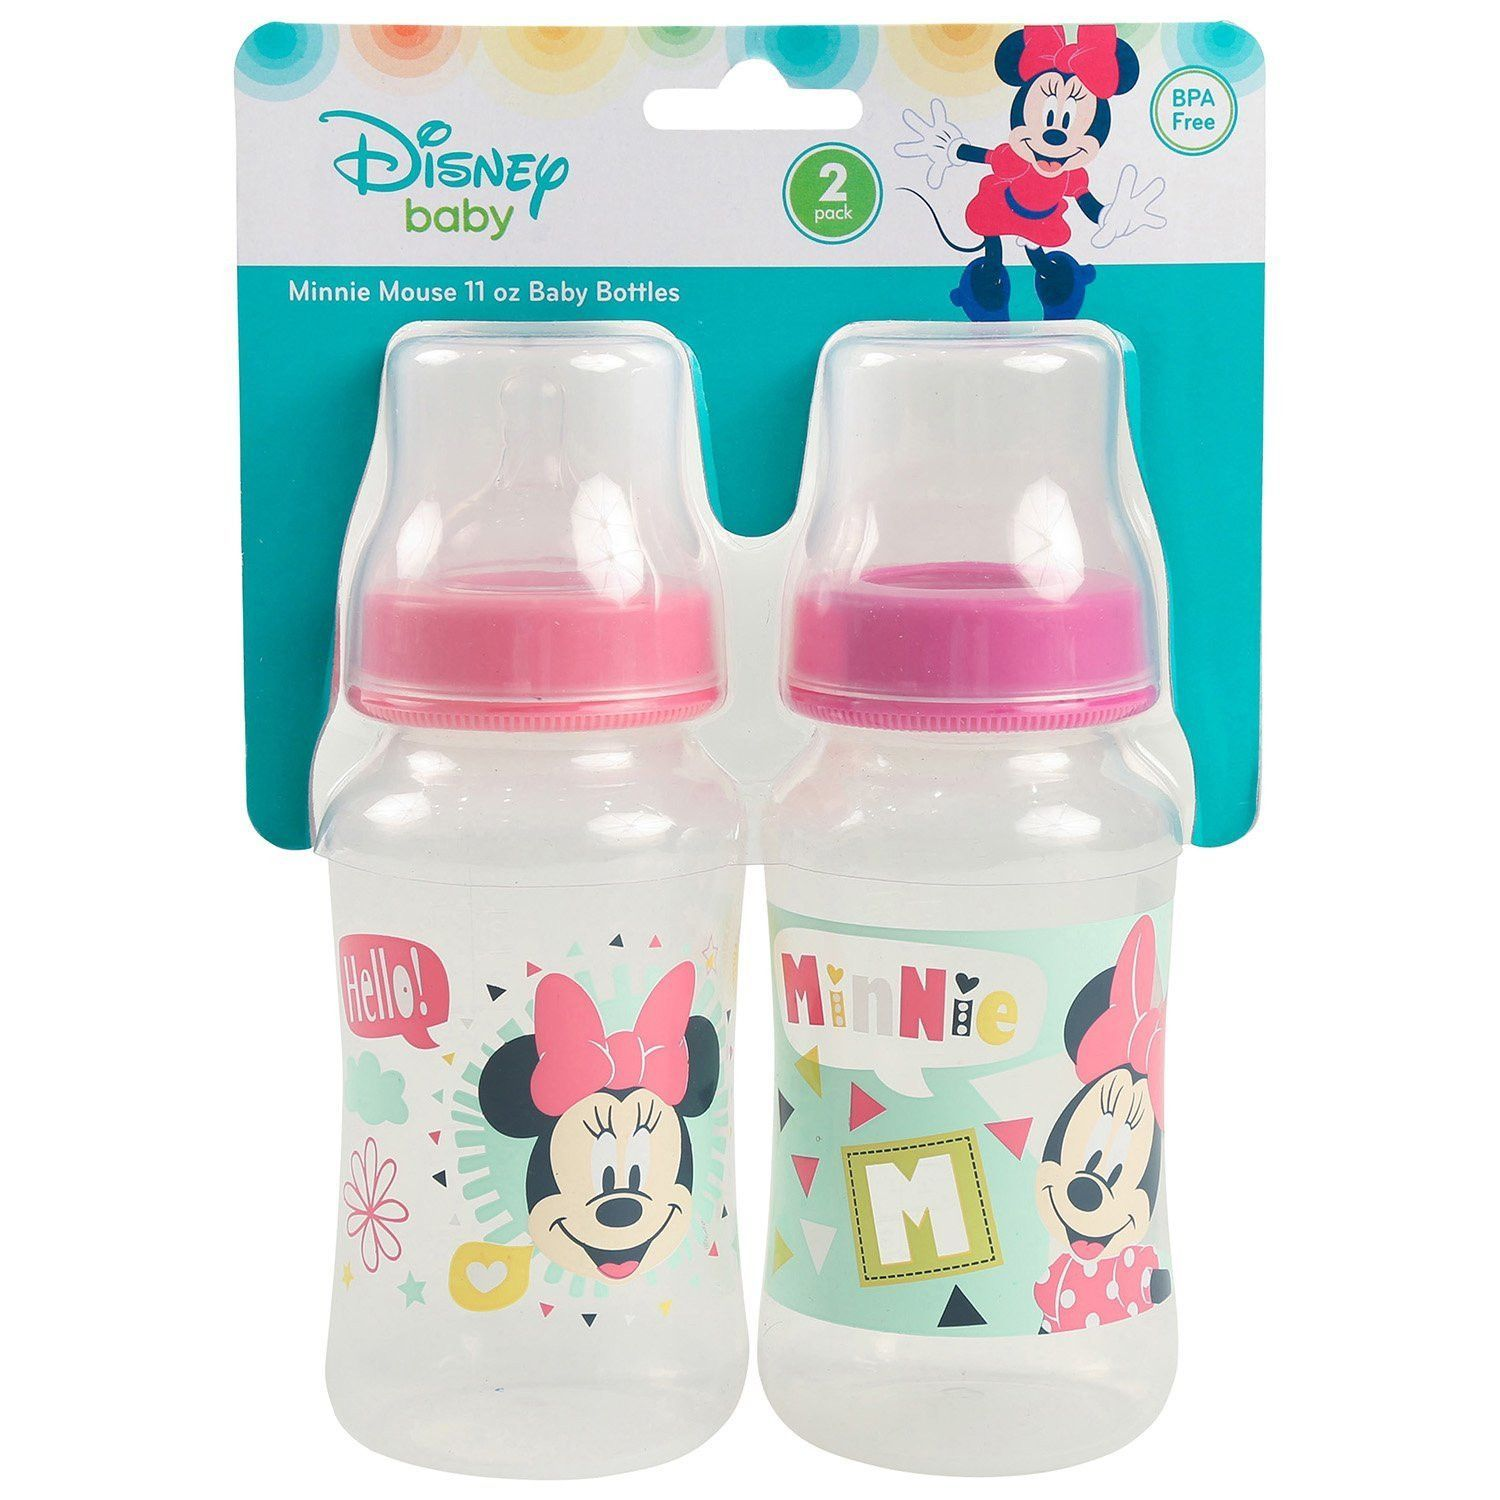 Disney Minnie Mouse 2 Pack 11 Ounce Bottles Hello Print In 2020 Baby Bottles Baby Girl Outfits Newborn Disney Baby Nurseries